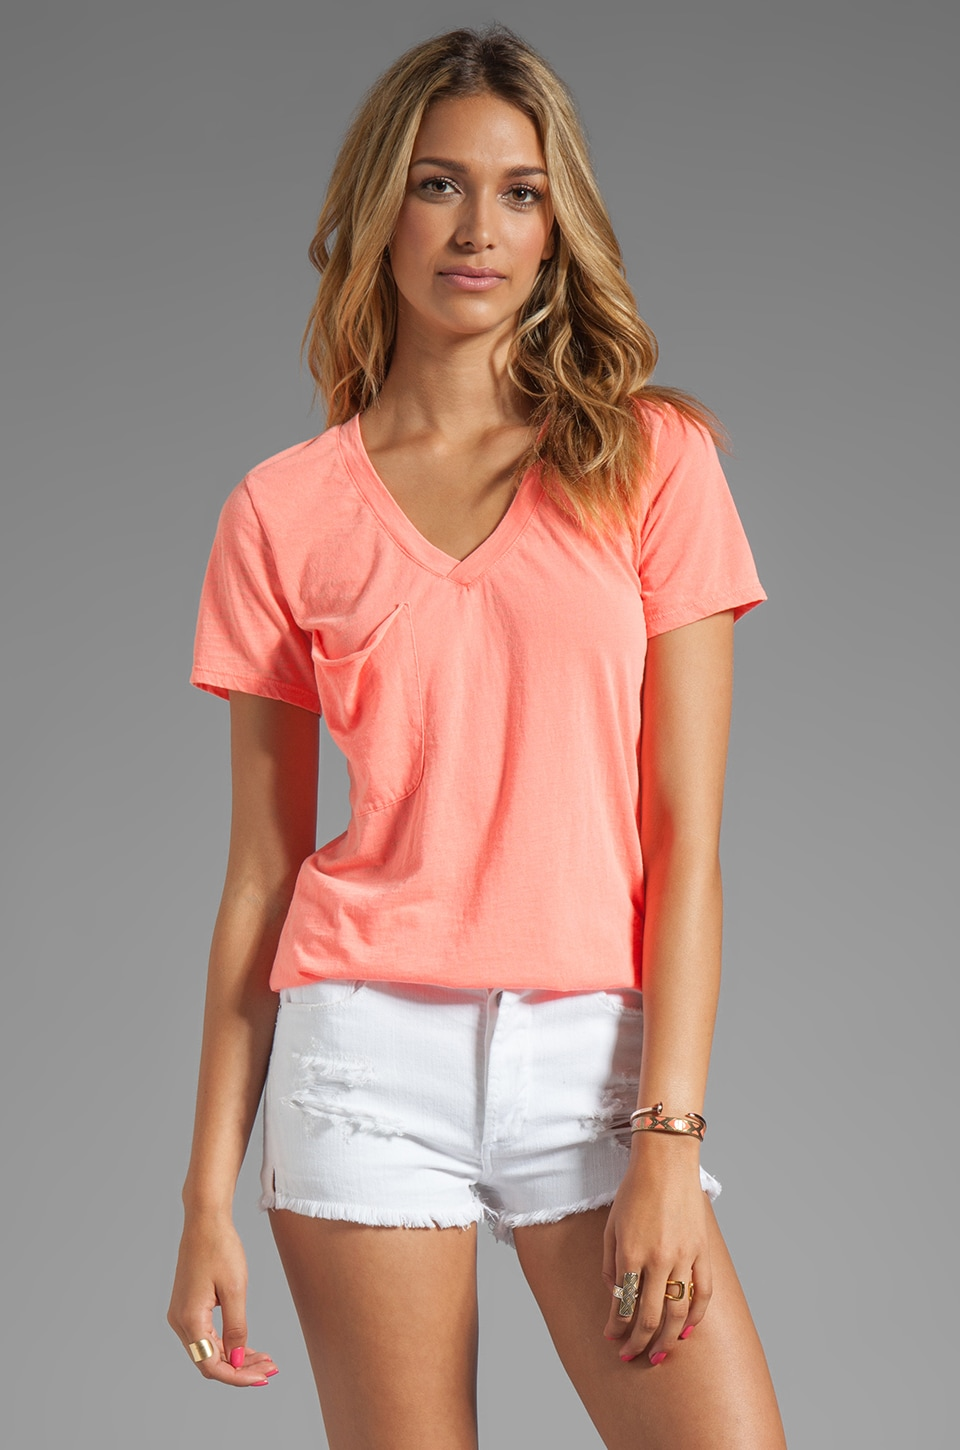 Bobi Burnout Pocket Tee in Neon Coral